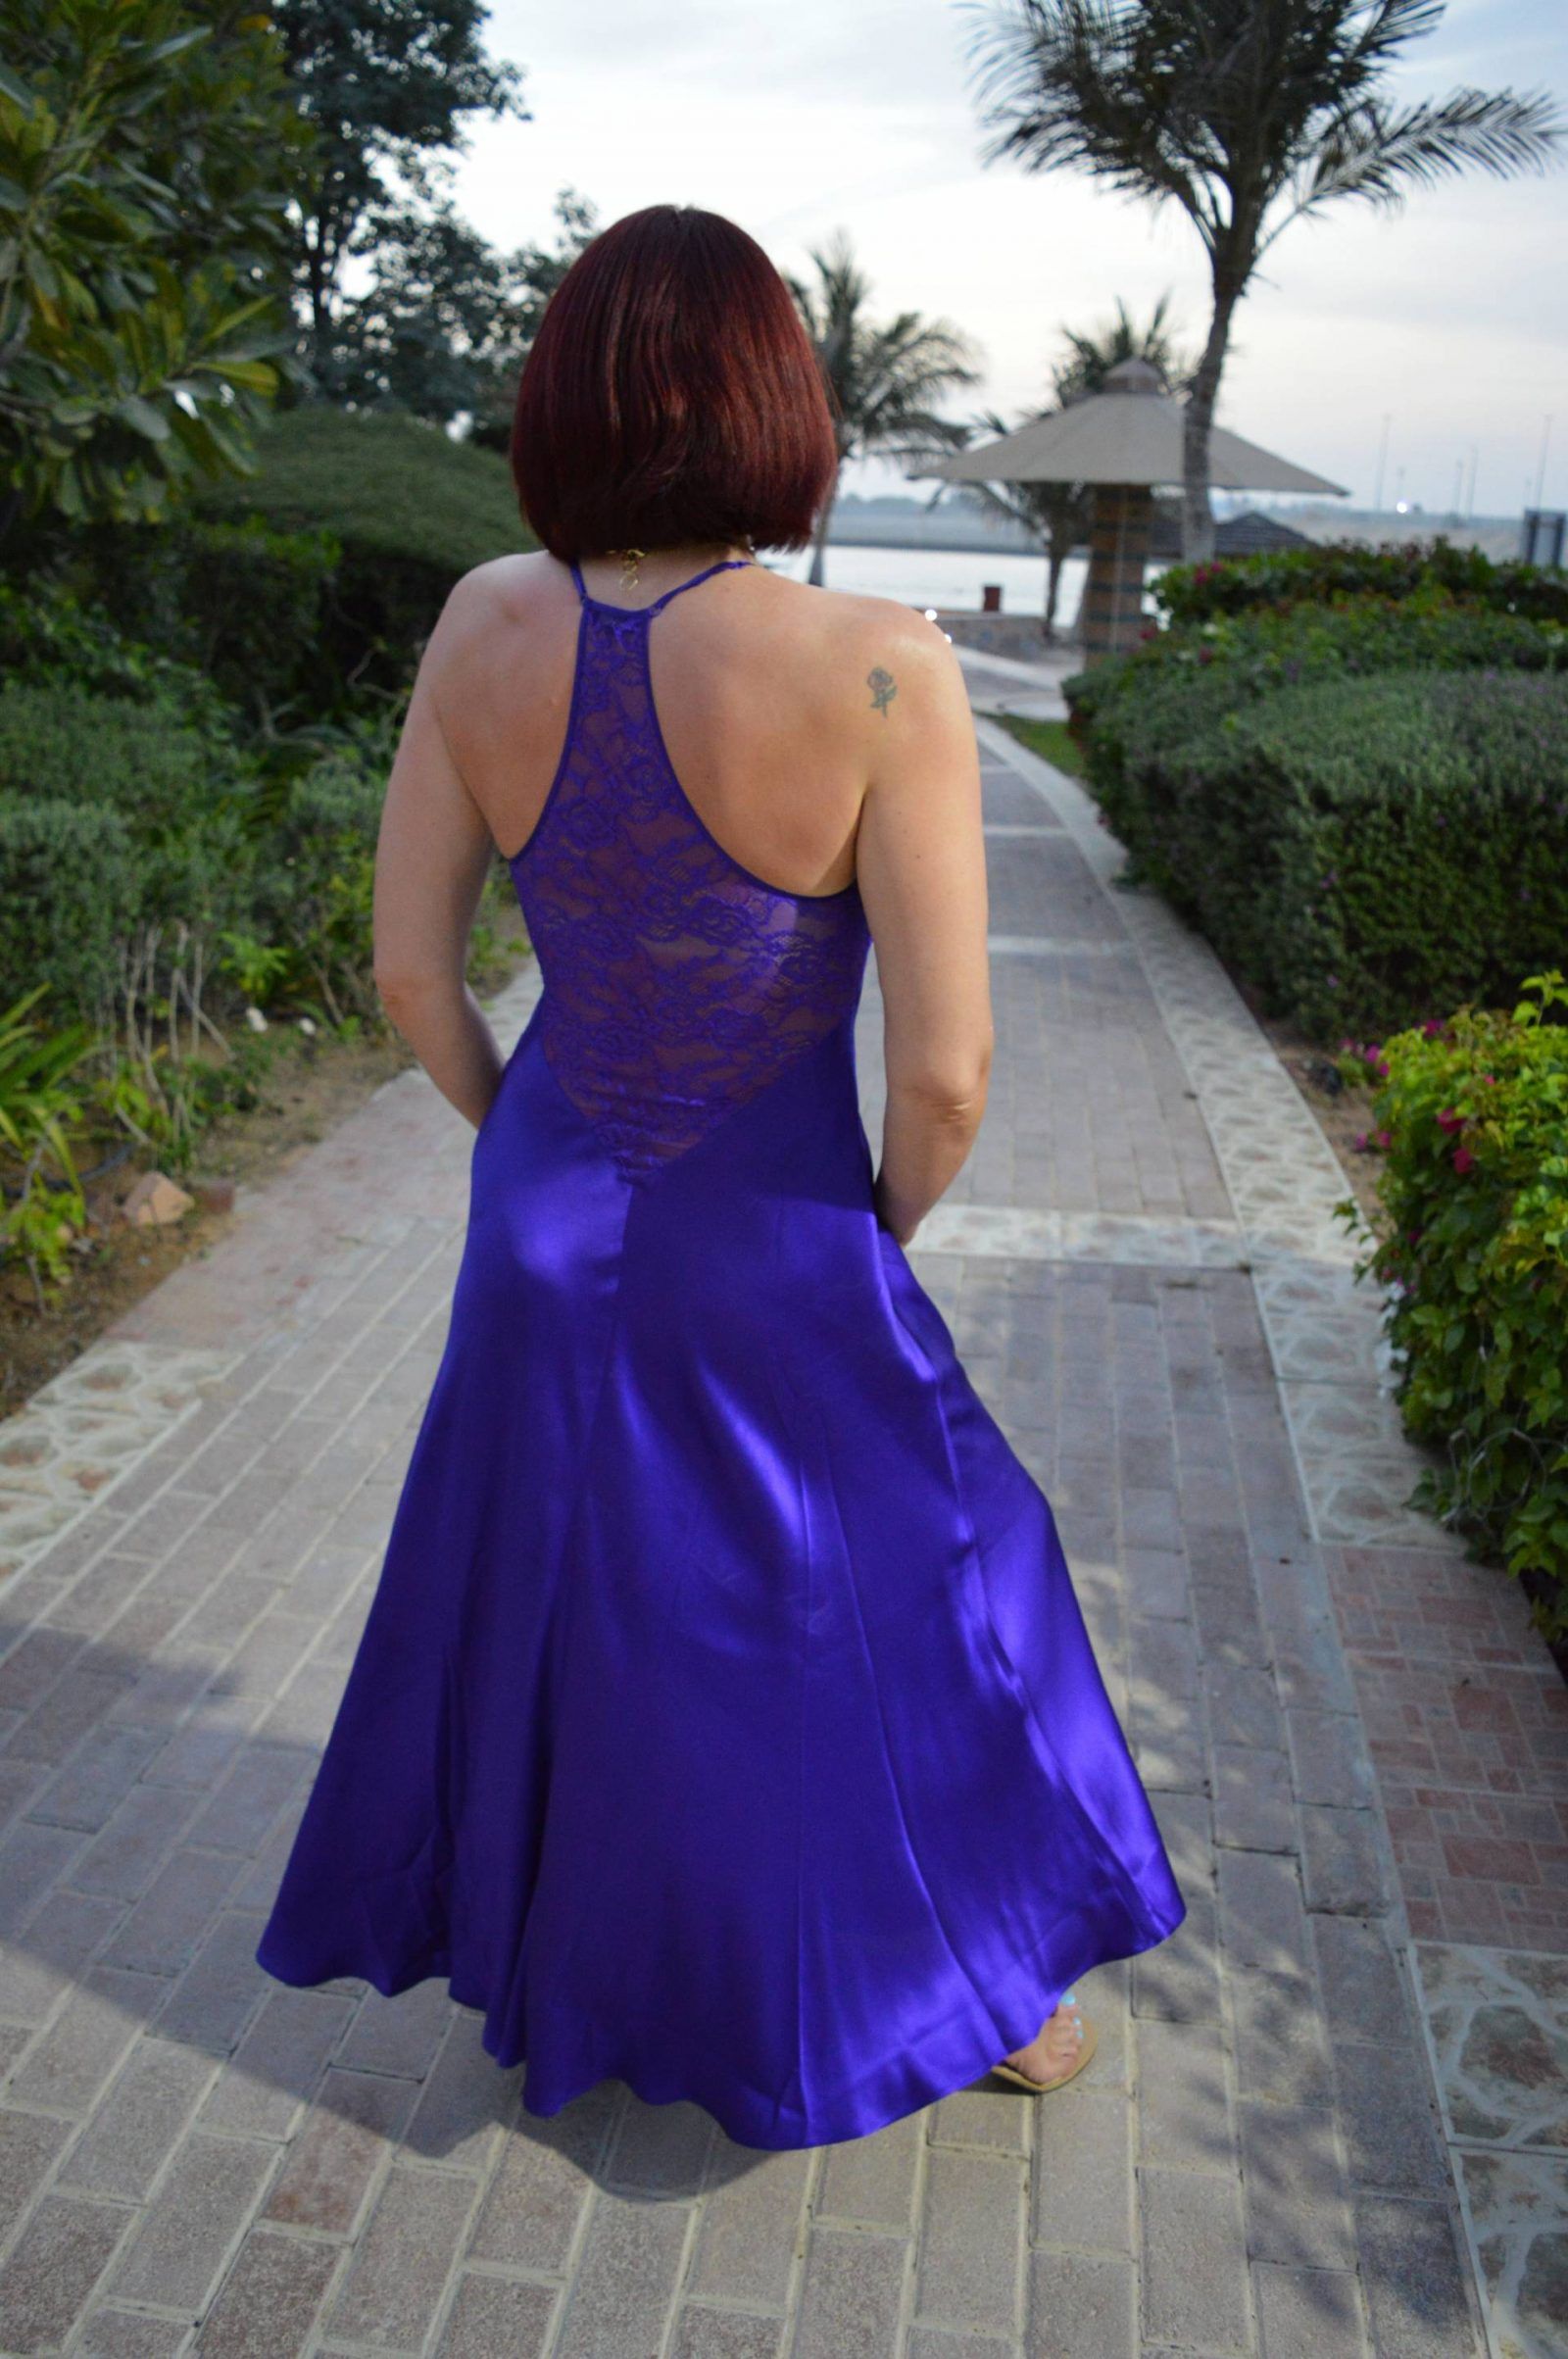 Styling a Long Silk Gown With Streetwear, NK iMode Gypsy Long Silk Gown in Ultra Violet